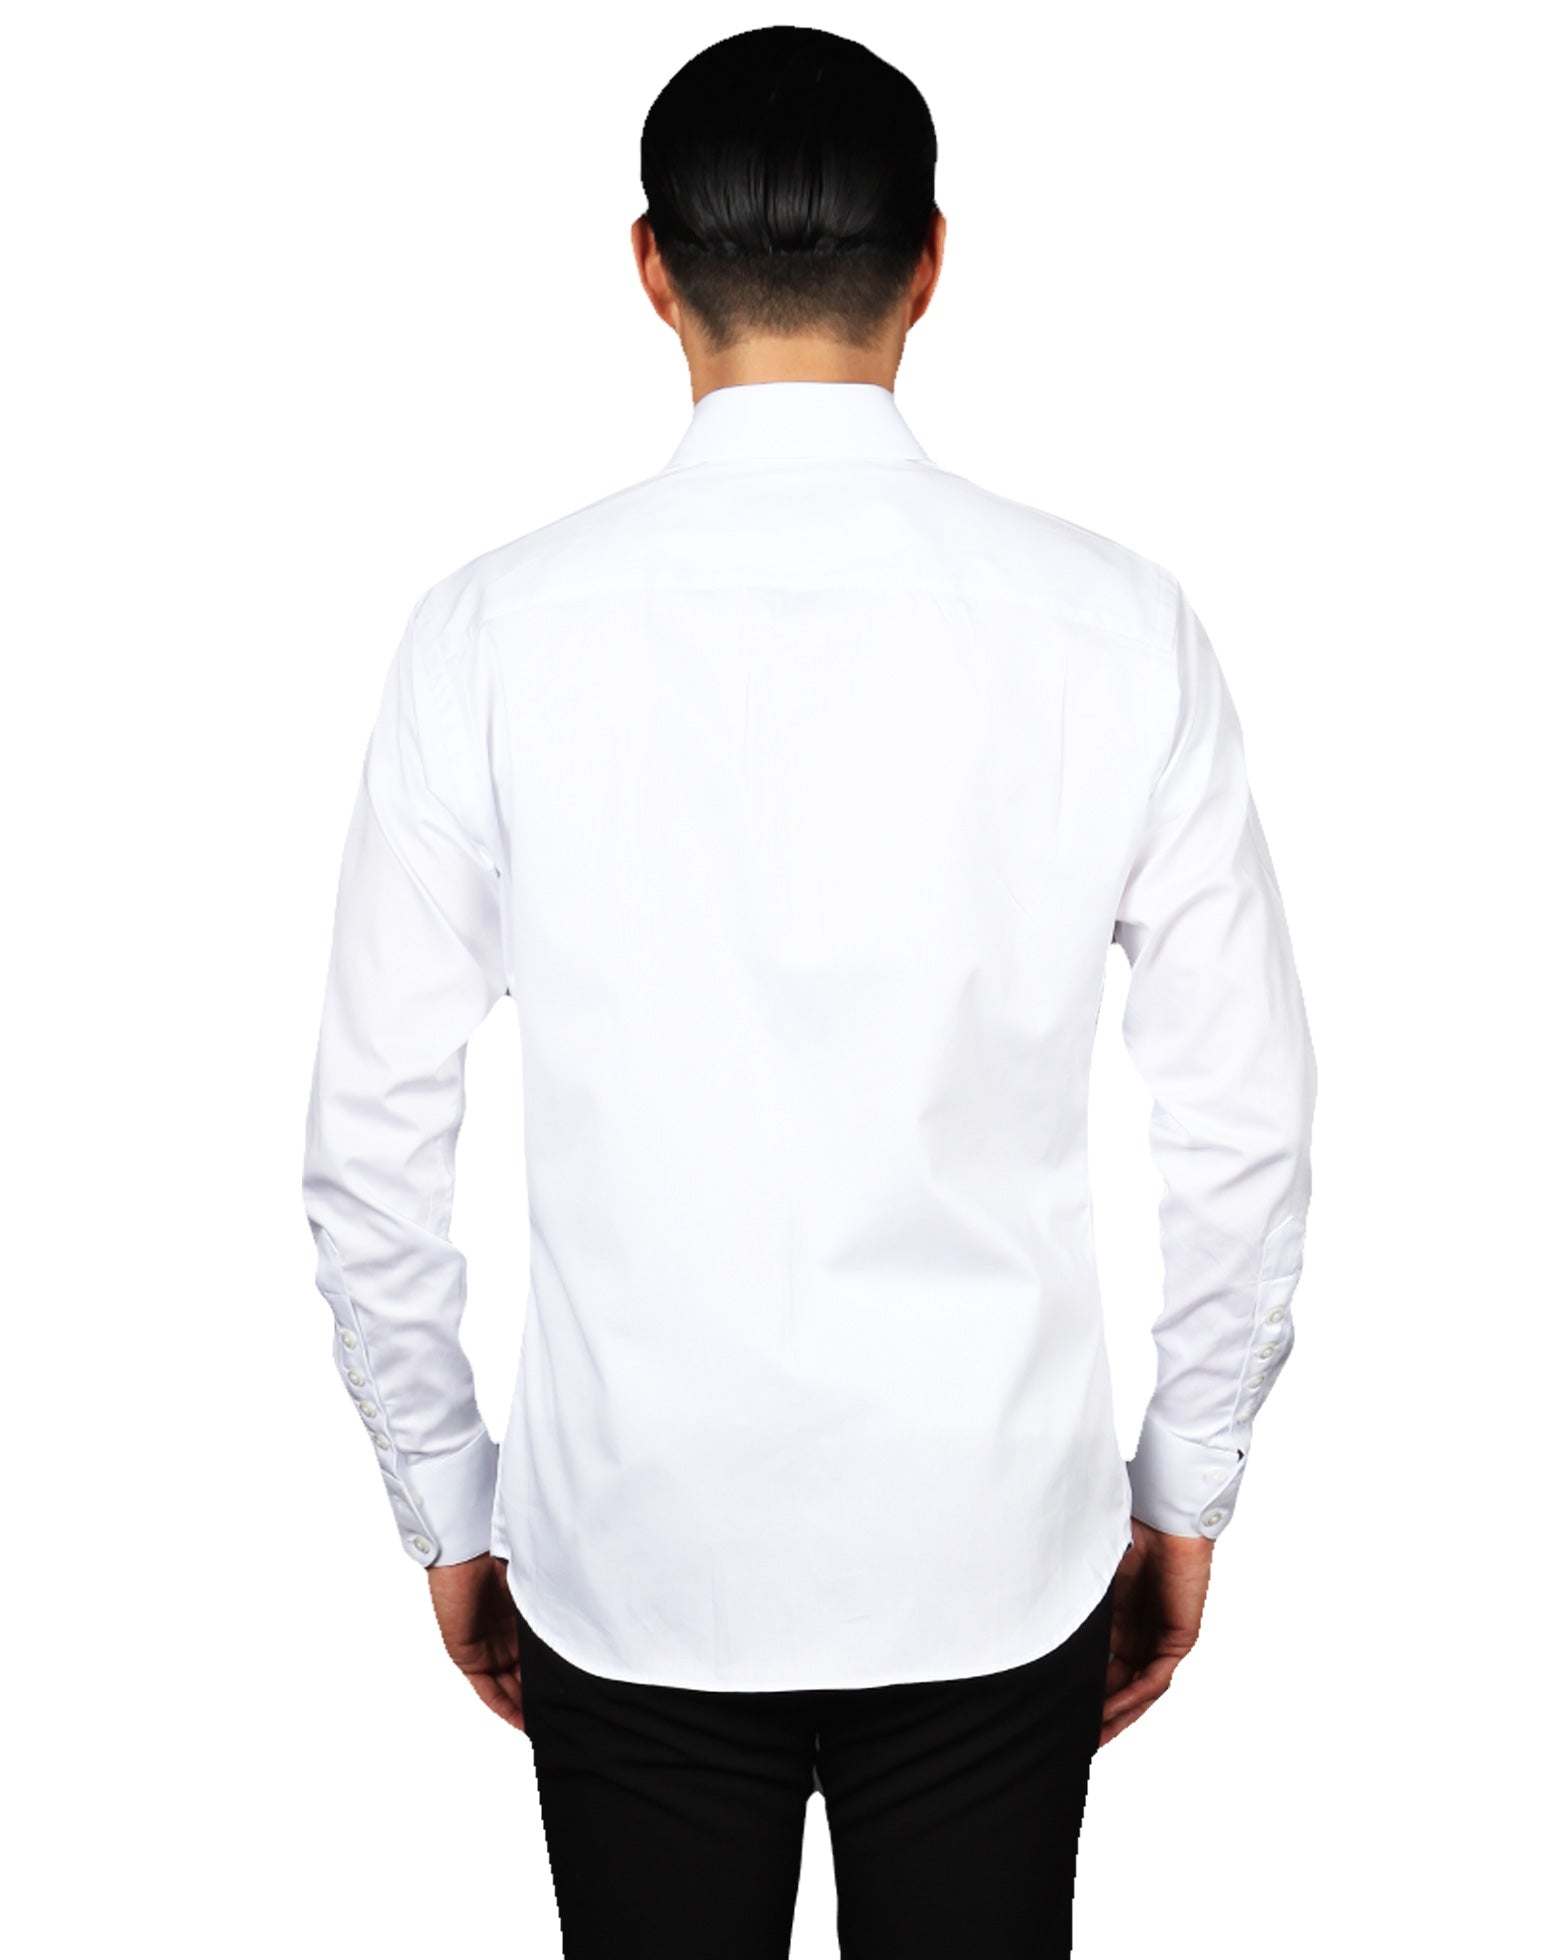 ANTHONY // WHITE Men's Dress Shirts - BY - ROBERT - JAMES -